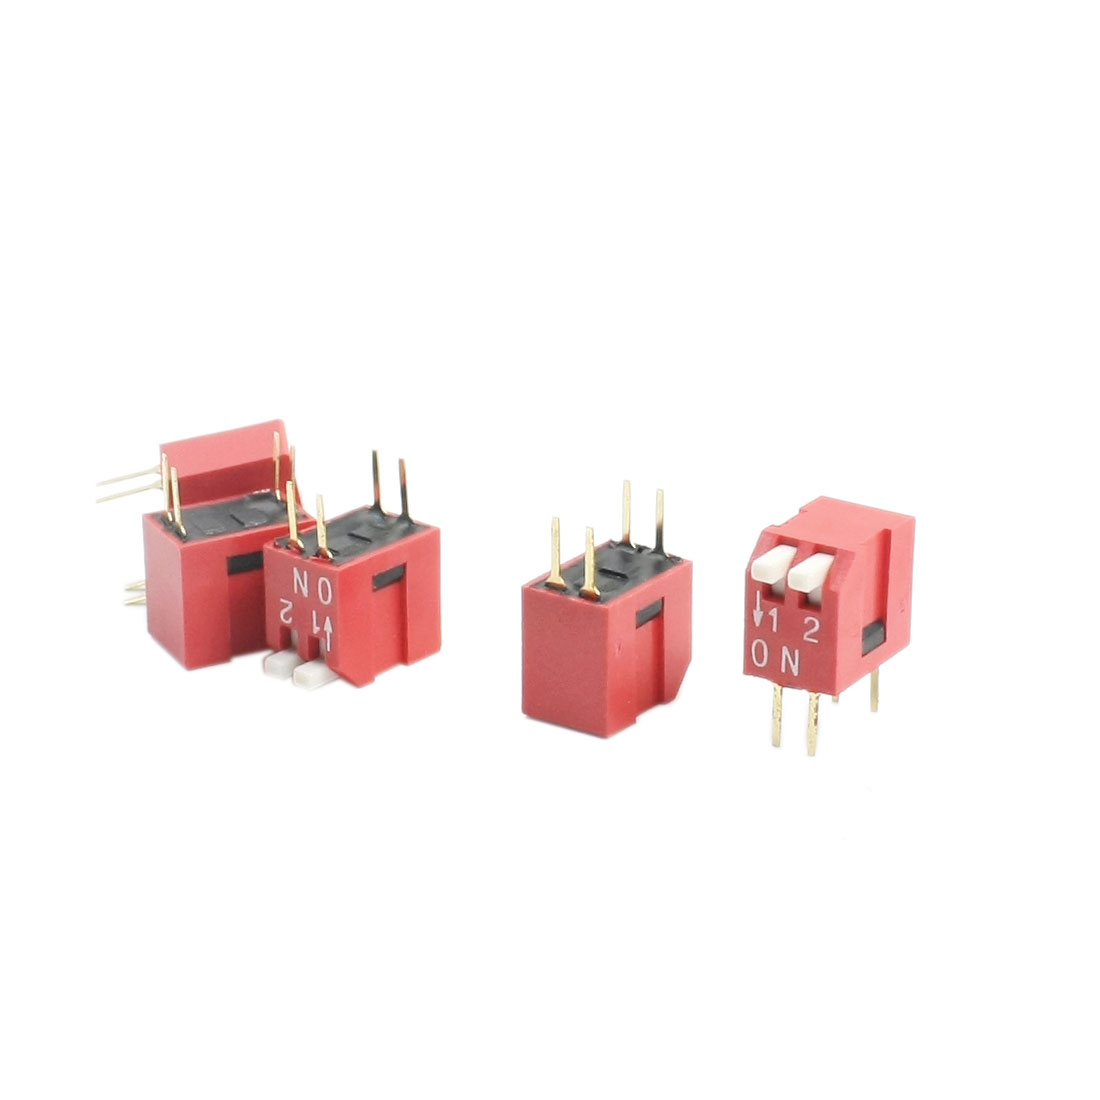 5Pcs 2.54mm Pitch Dual Row 2-Way 4 Pin PCB Through Hole Mounting Slide Type DIP Switches Red